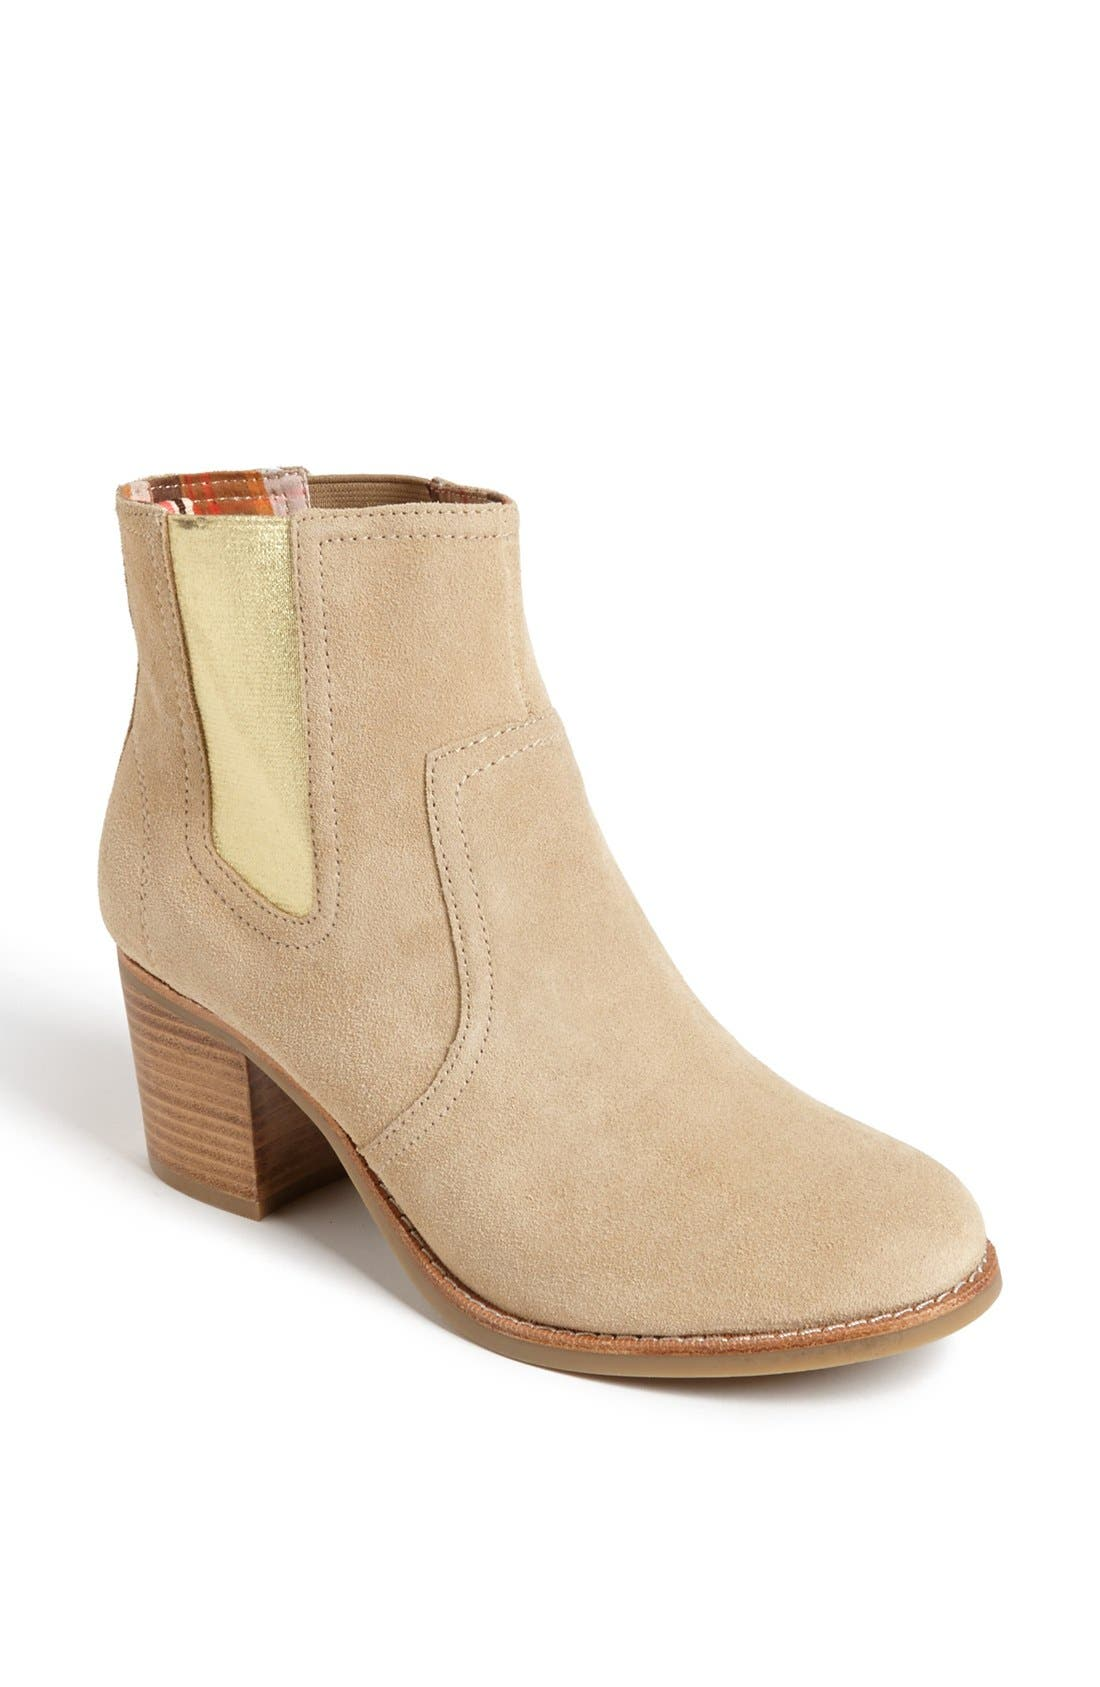 Alternate Image 1 Selected - Sperry Top-Sider® 'Marlow' Bootie (Online Only)